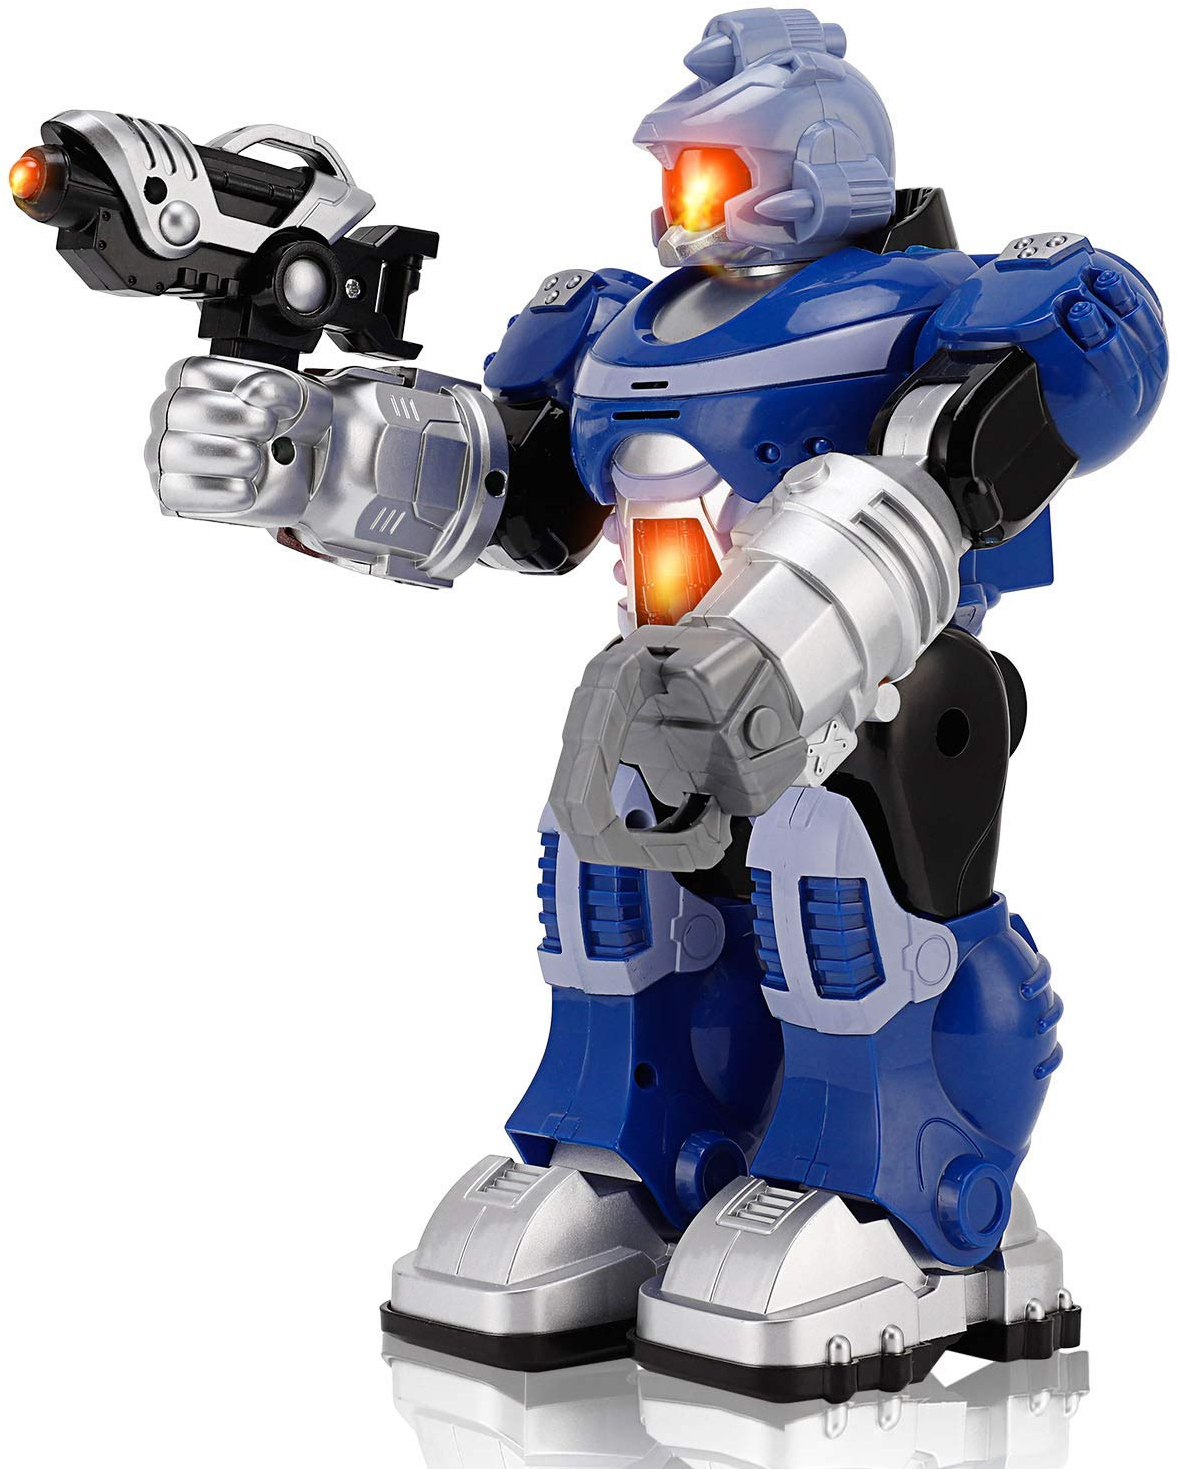 Children Robot Details About Toys For Boys Kids Children Walking Robot For 3 4 5 6 7 8 9 10 Years Olds Age